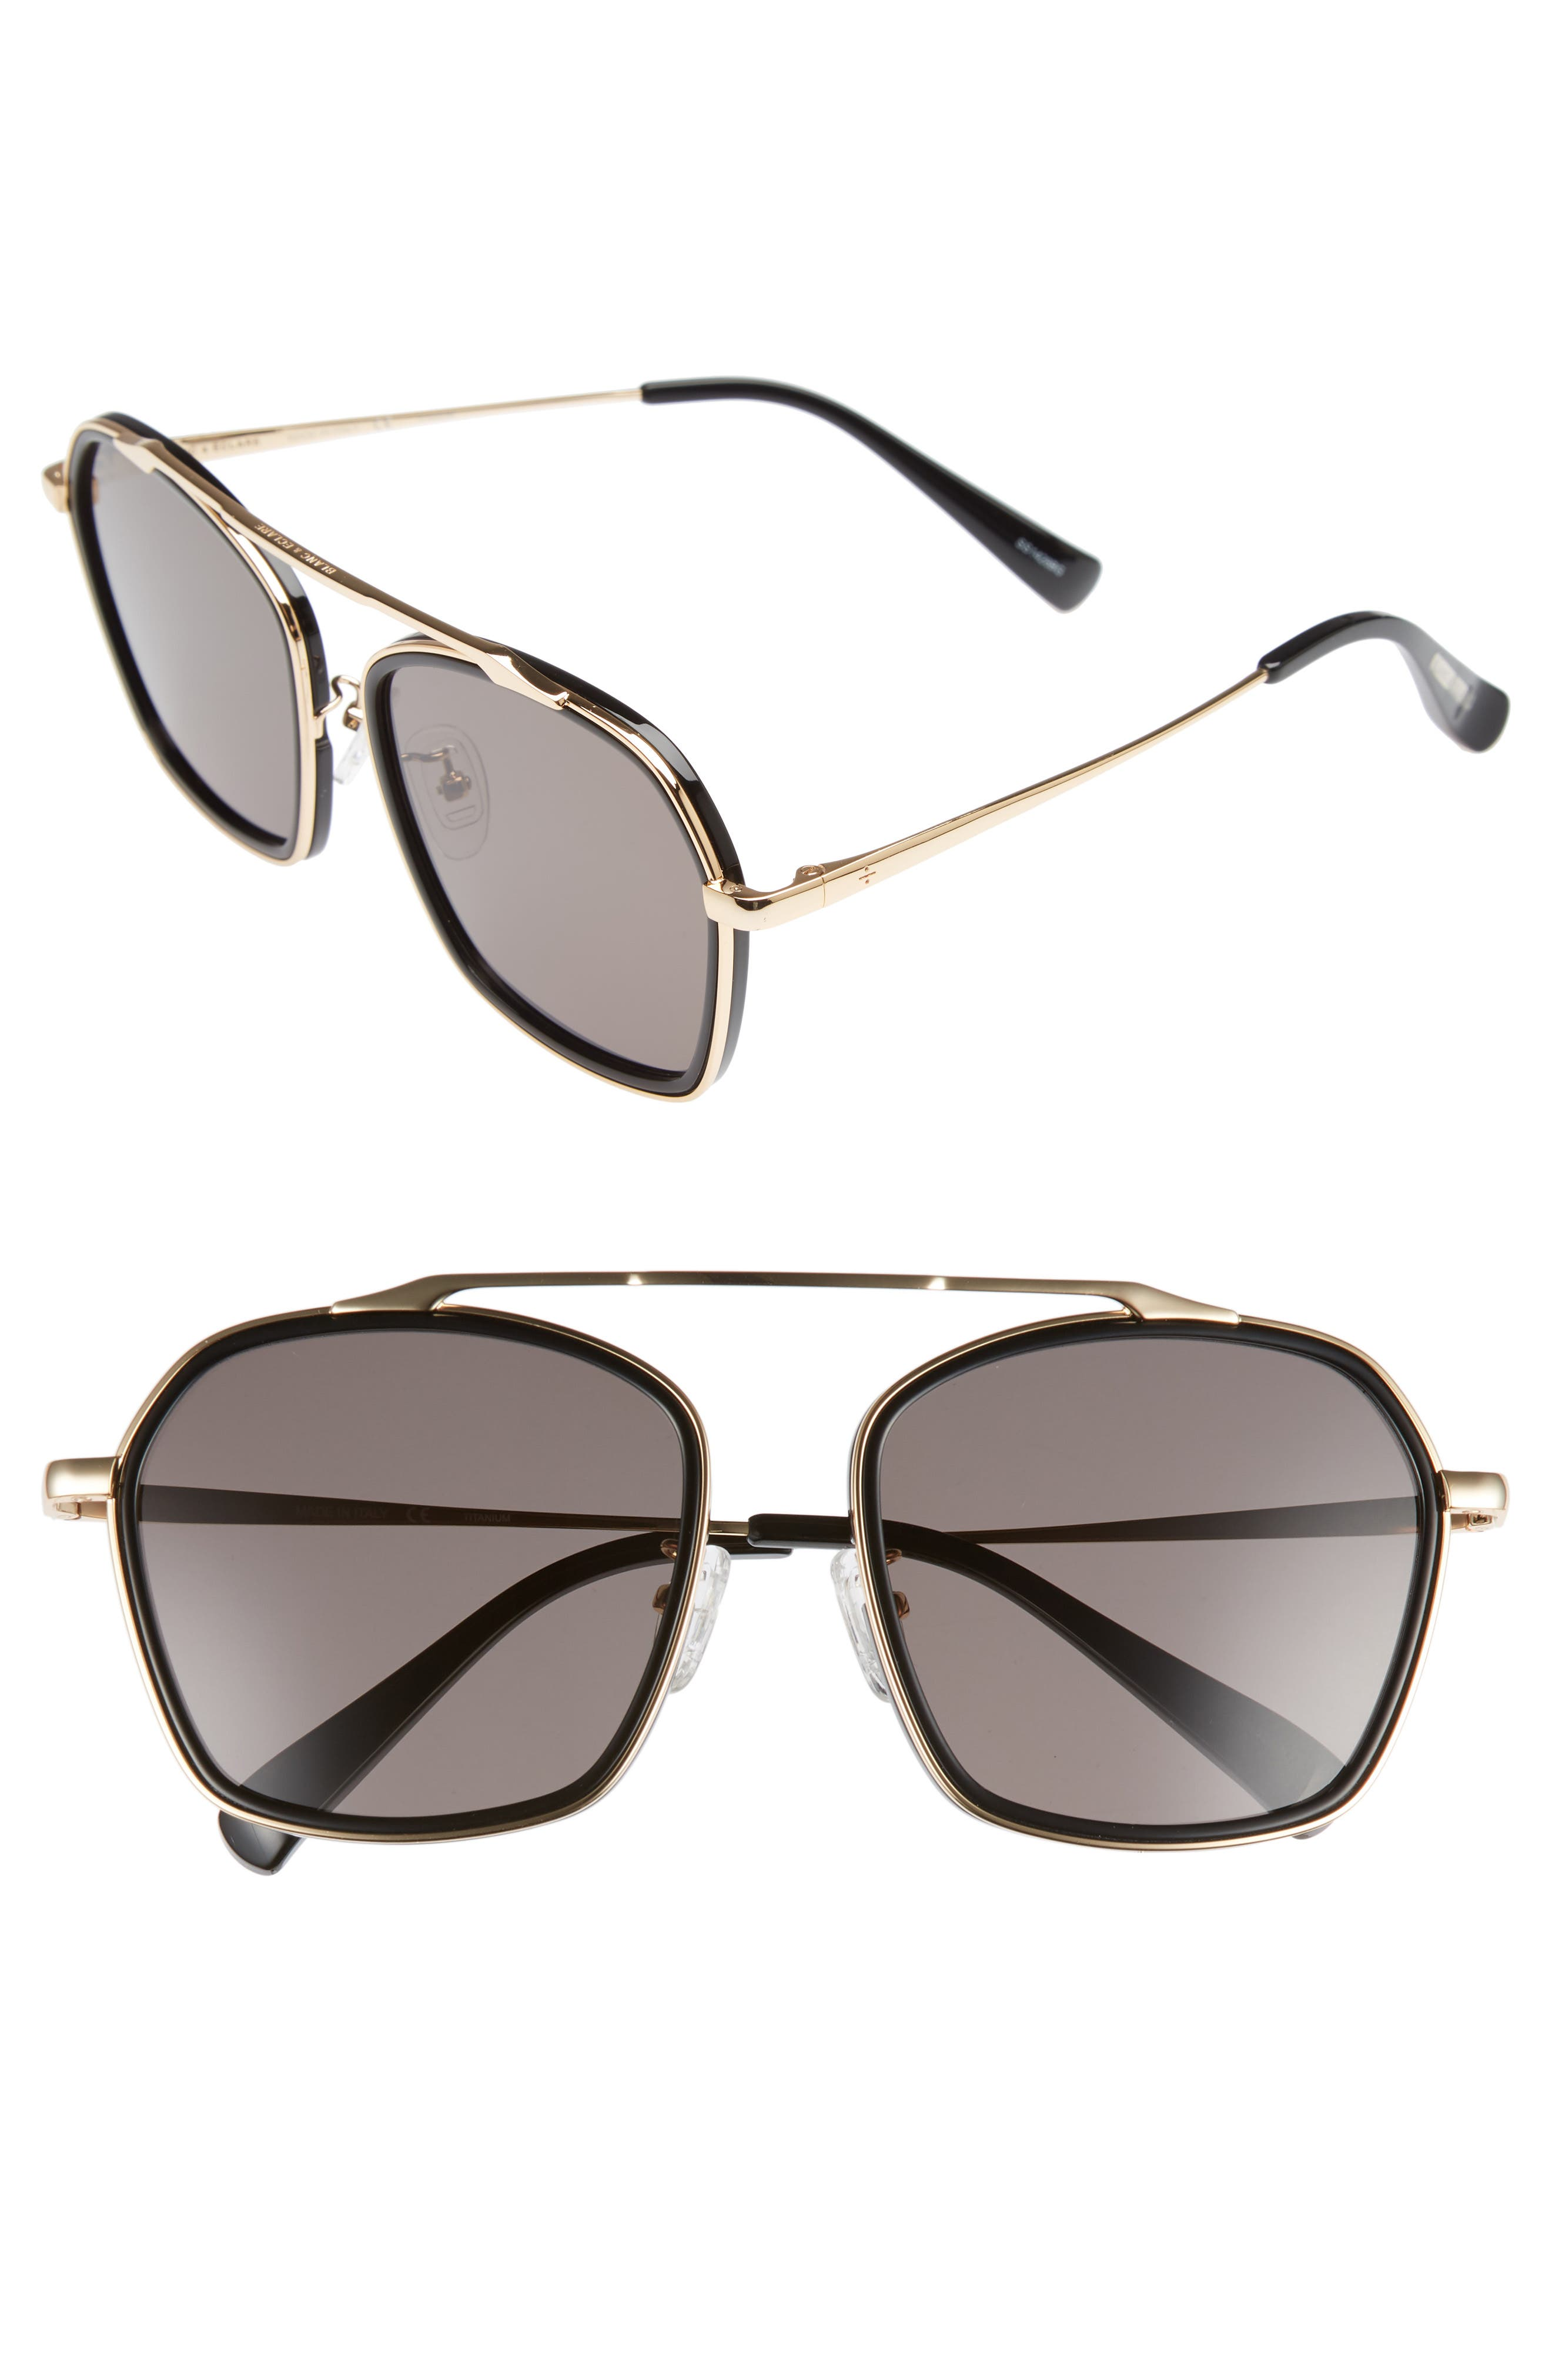 Main Image - BLANC & ECLARE Vancouver 58mm Polarized Aviator Sunglasses